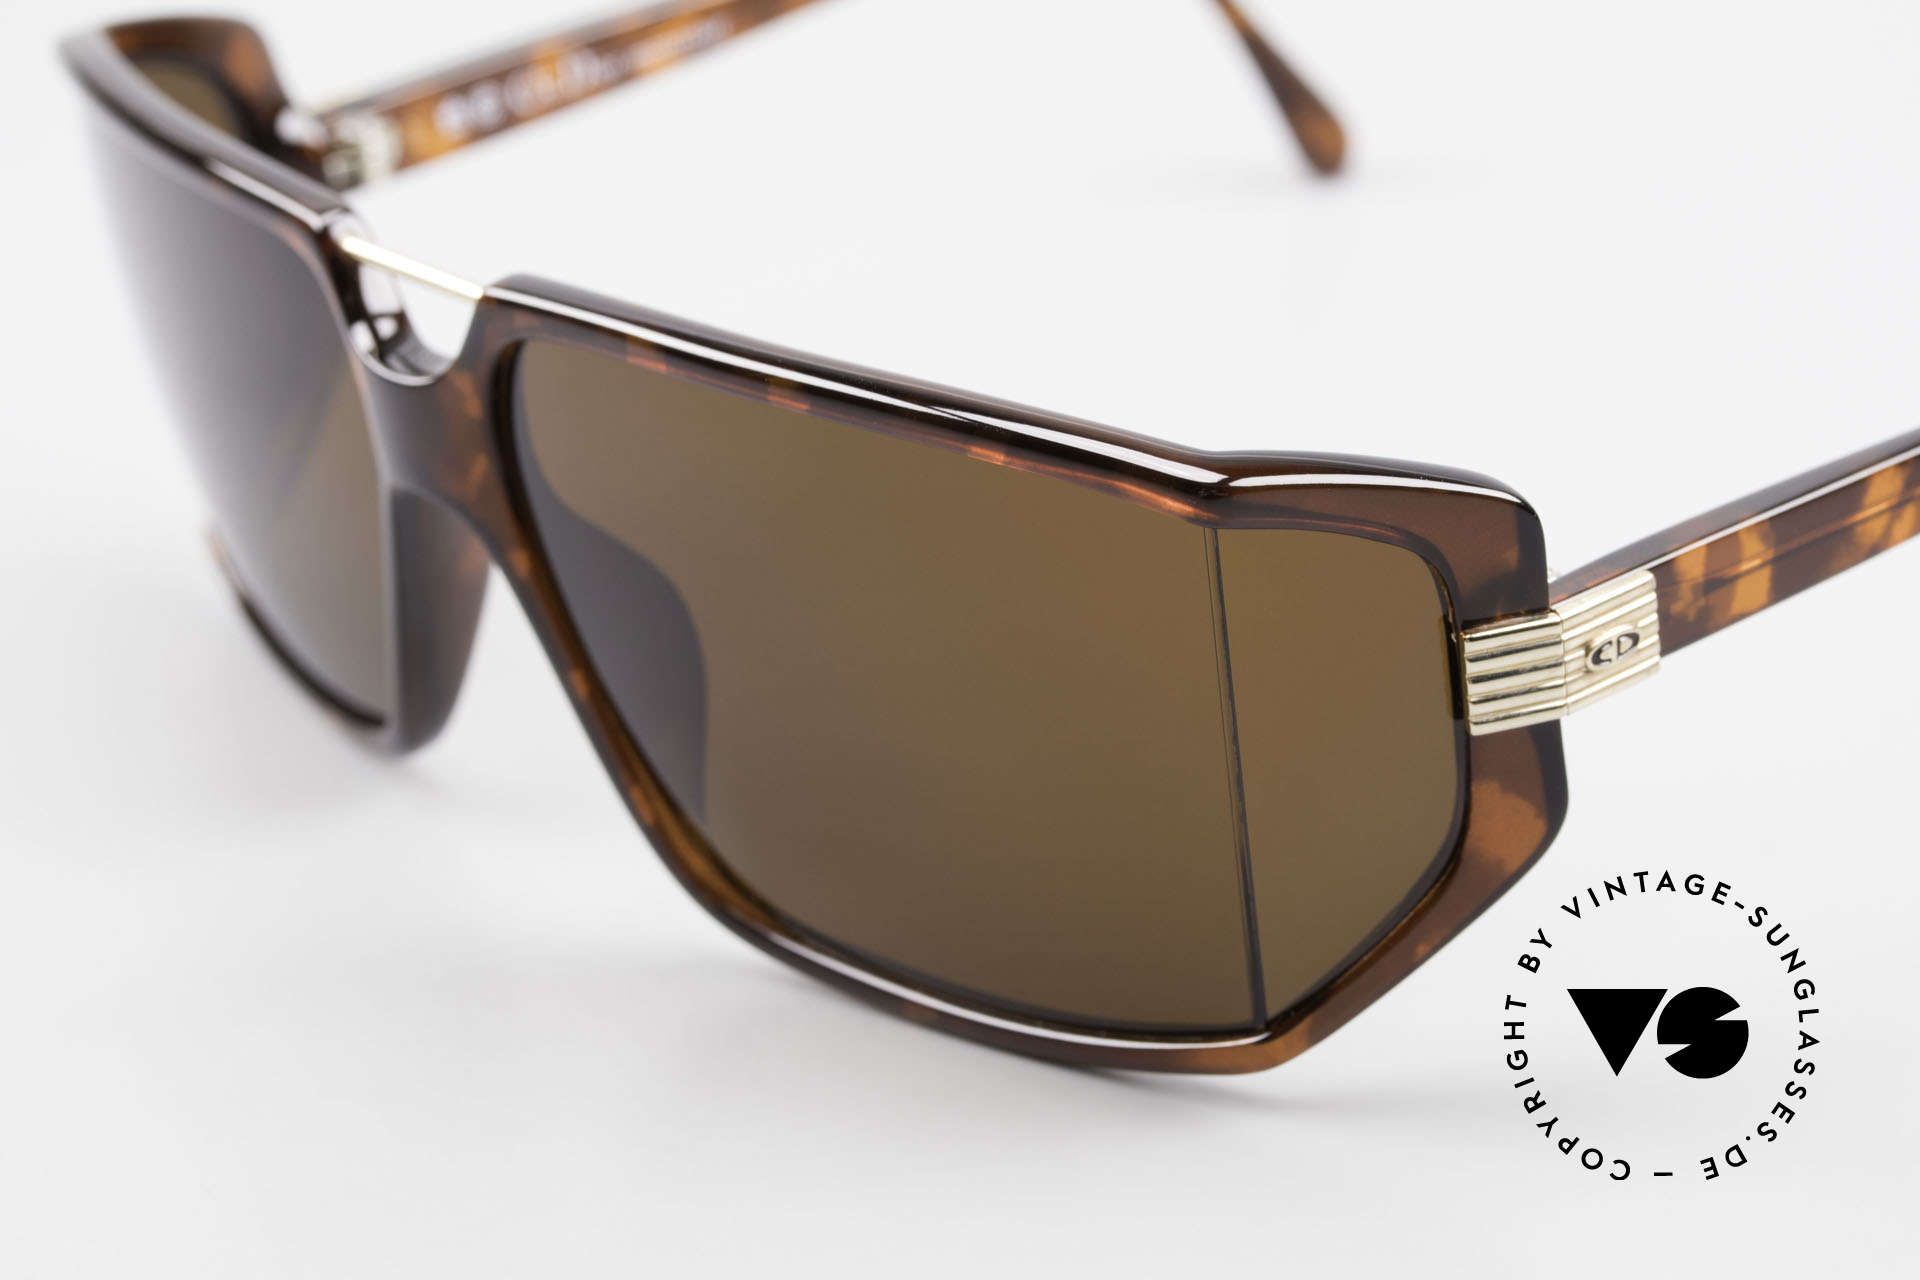 Christian Dior 2440 80's Monsieur Men's Shades, with dark brown polycarbonate sun lenses (100% UV), Made for Men